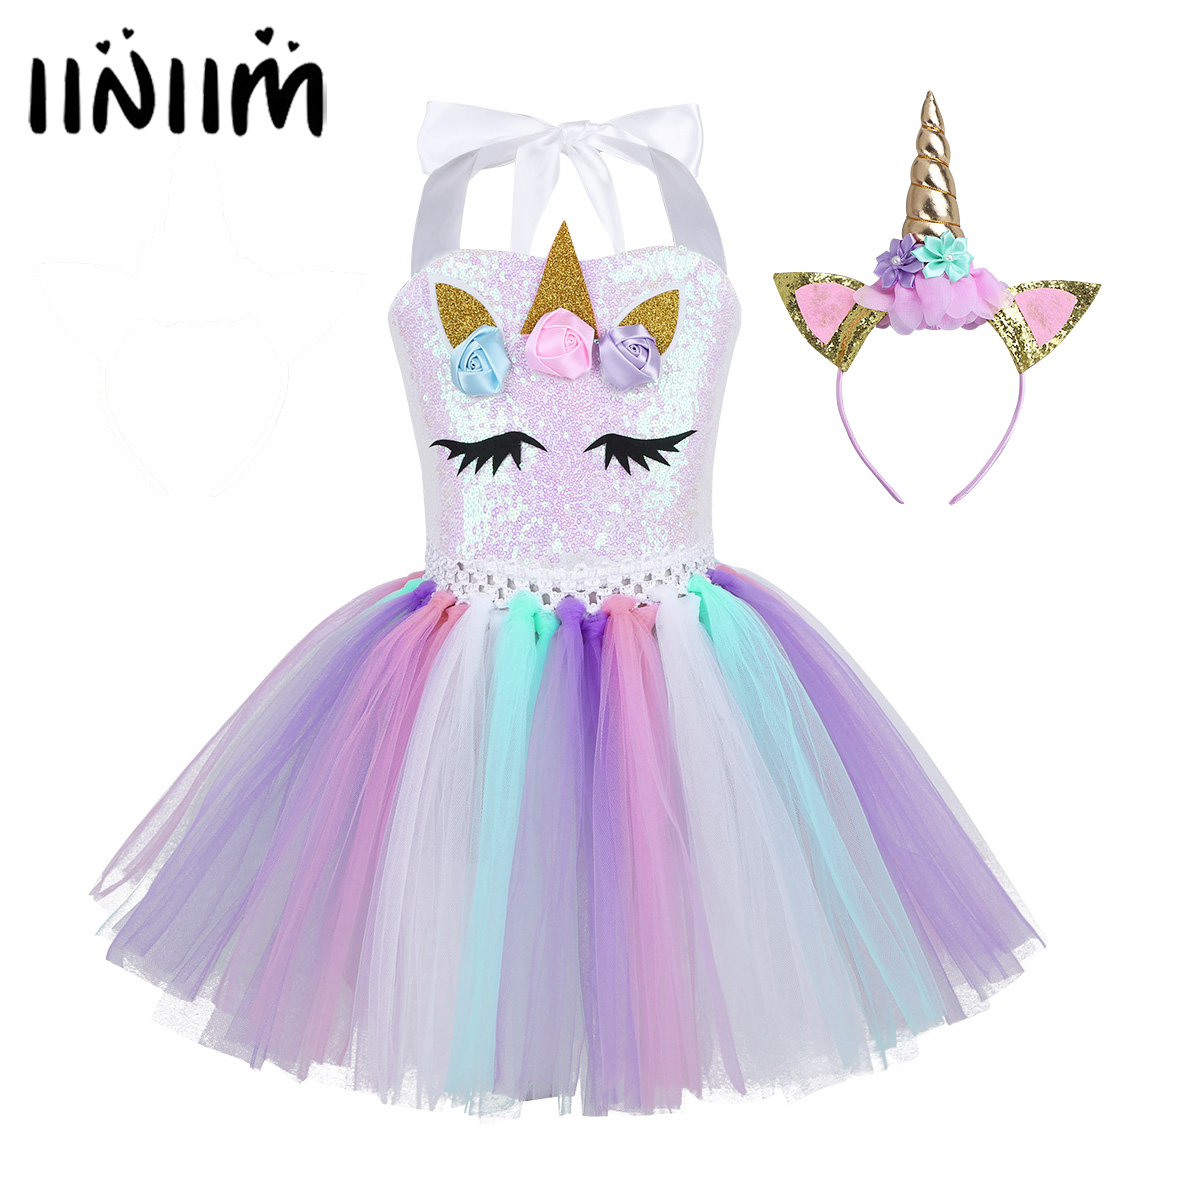 Teen Girls Cartoon Role Play Flowers Shiny Sequins  Mesh Tutu Dress Up with Hair Hoop Halloween Cosplay Party Costume for Kids